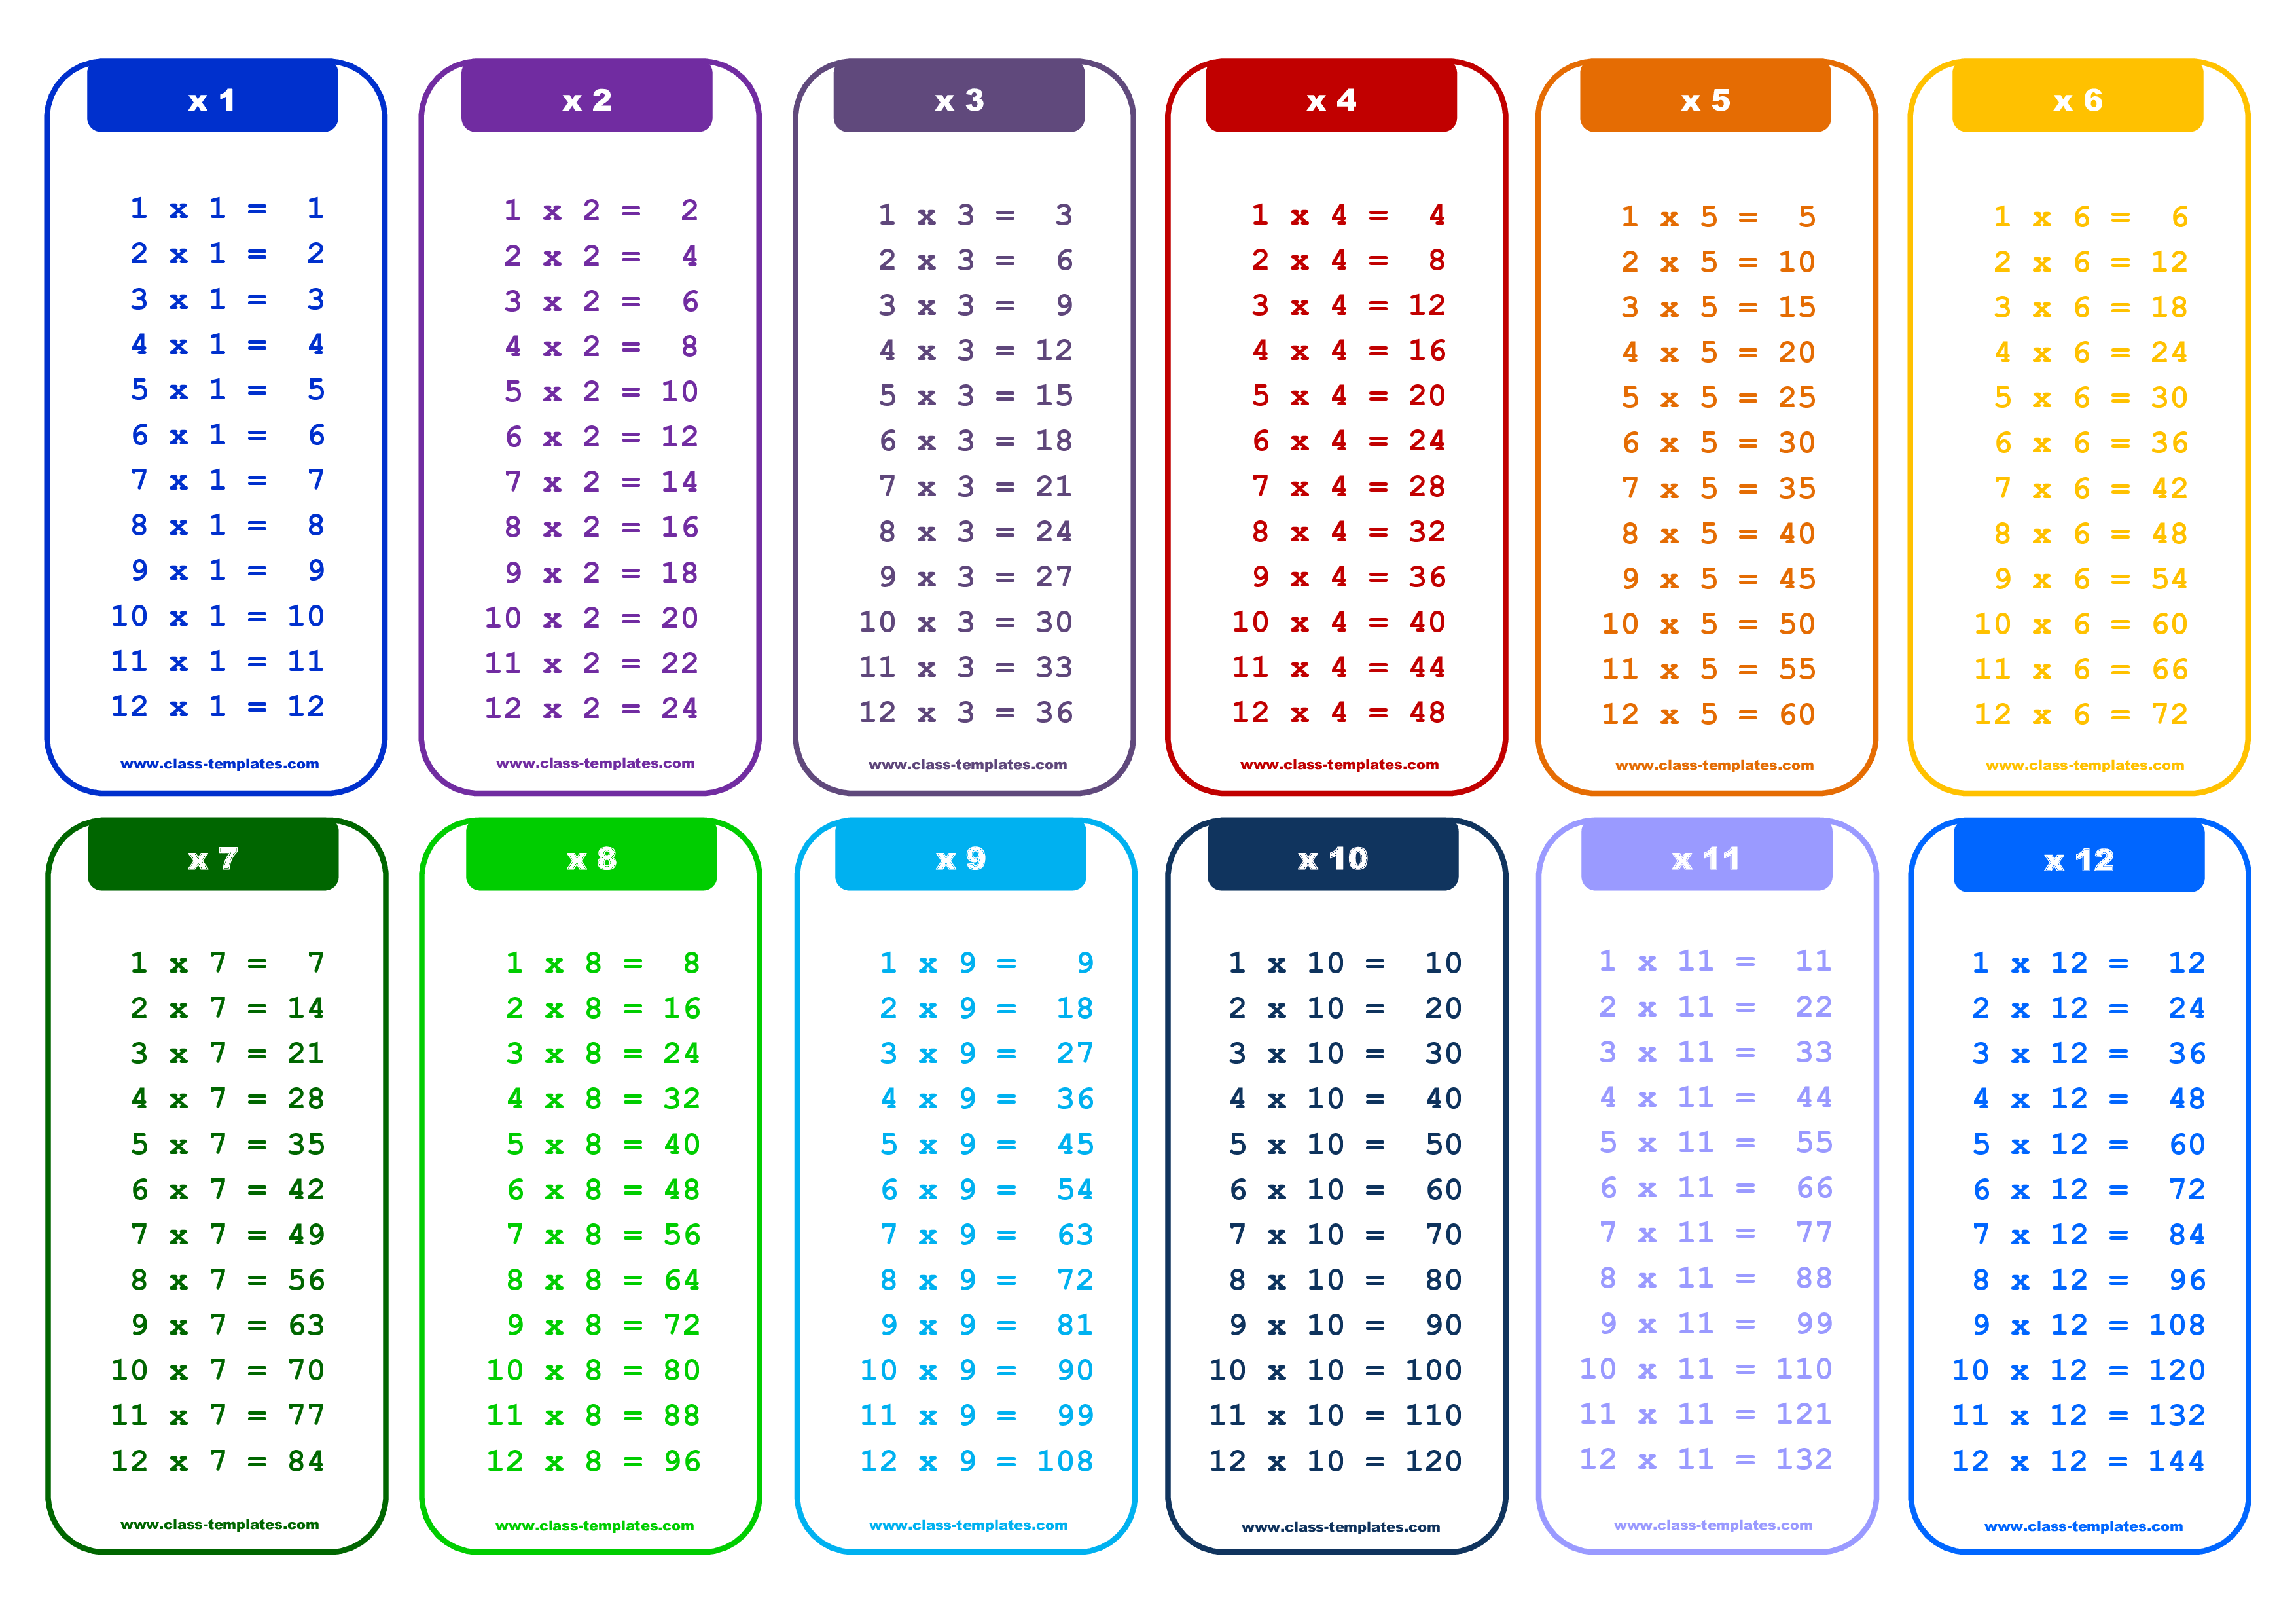 X12 Times Table Chart